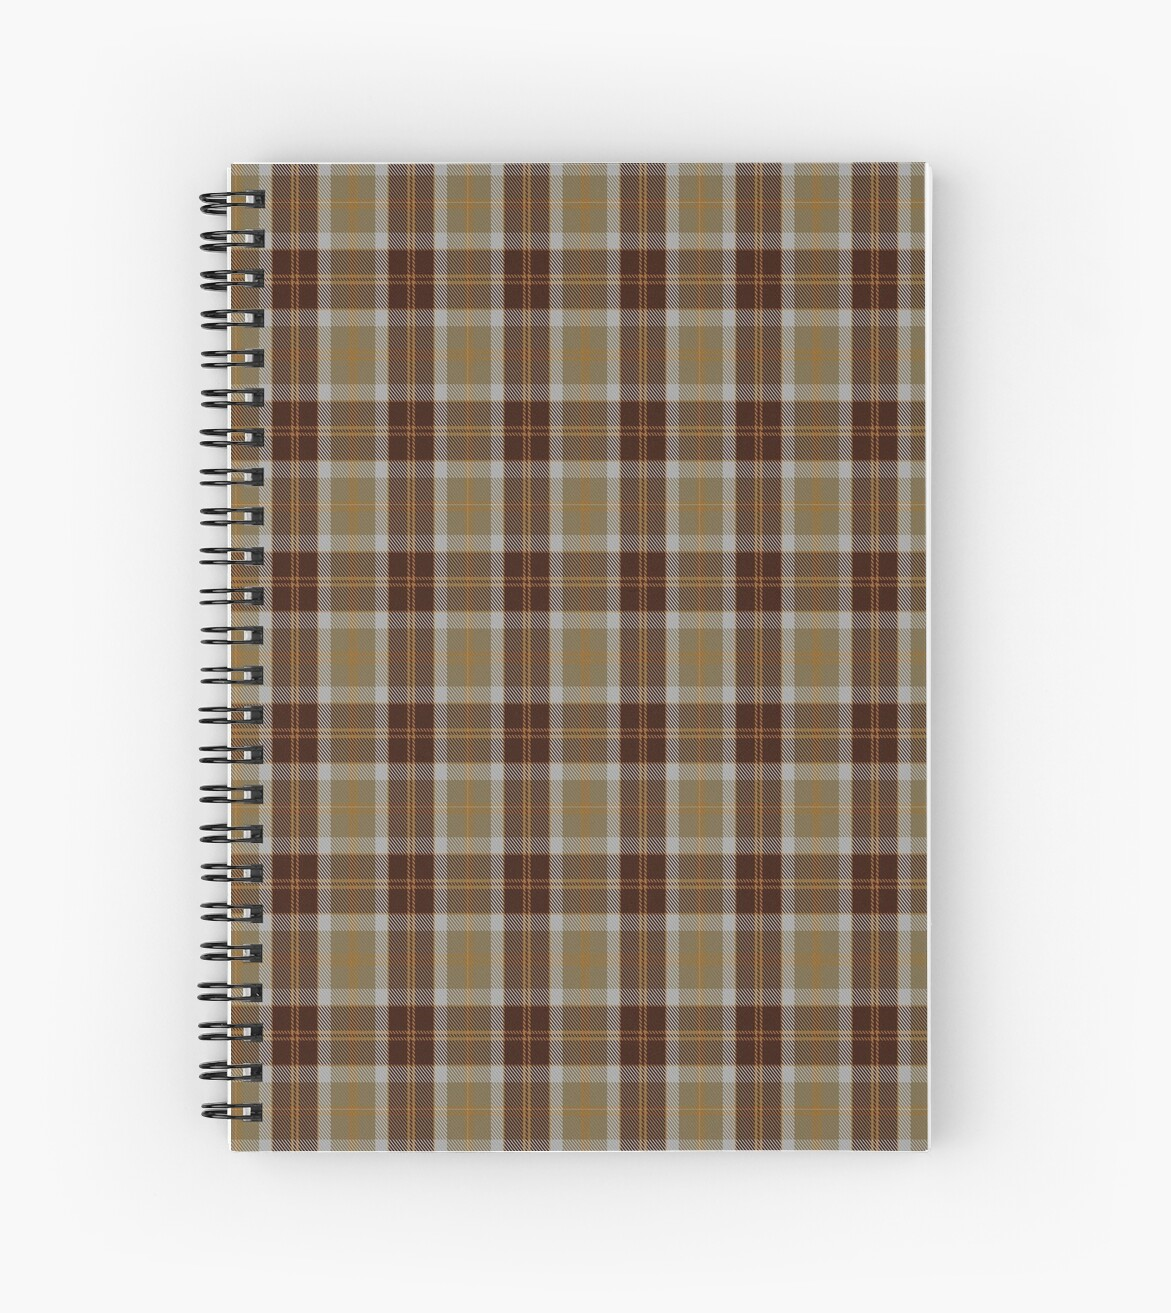 00763 Bannockbane Orange Stripe Tartan by Detnecs2013